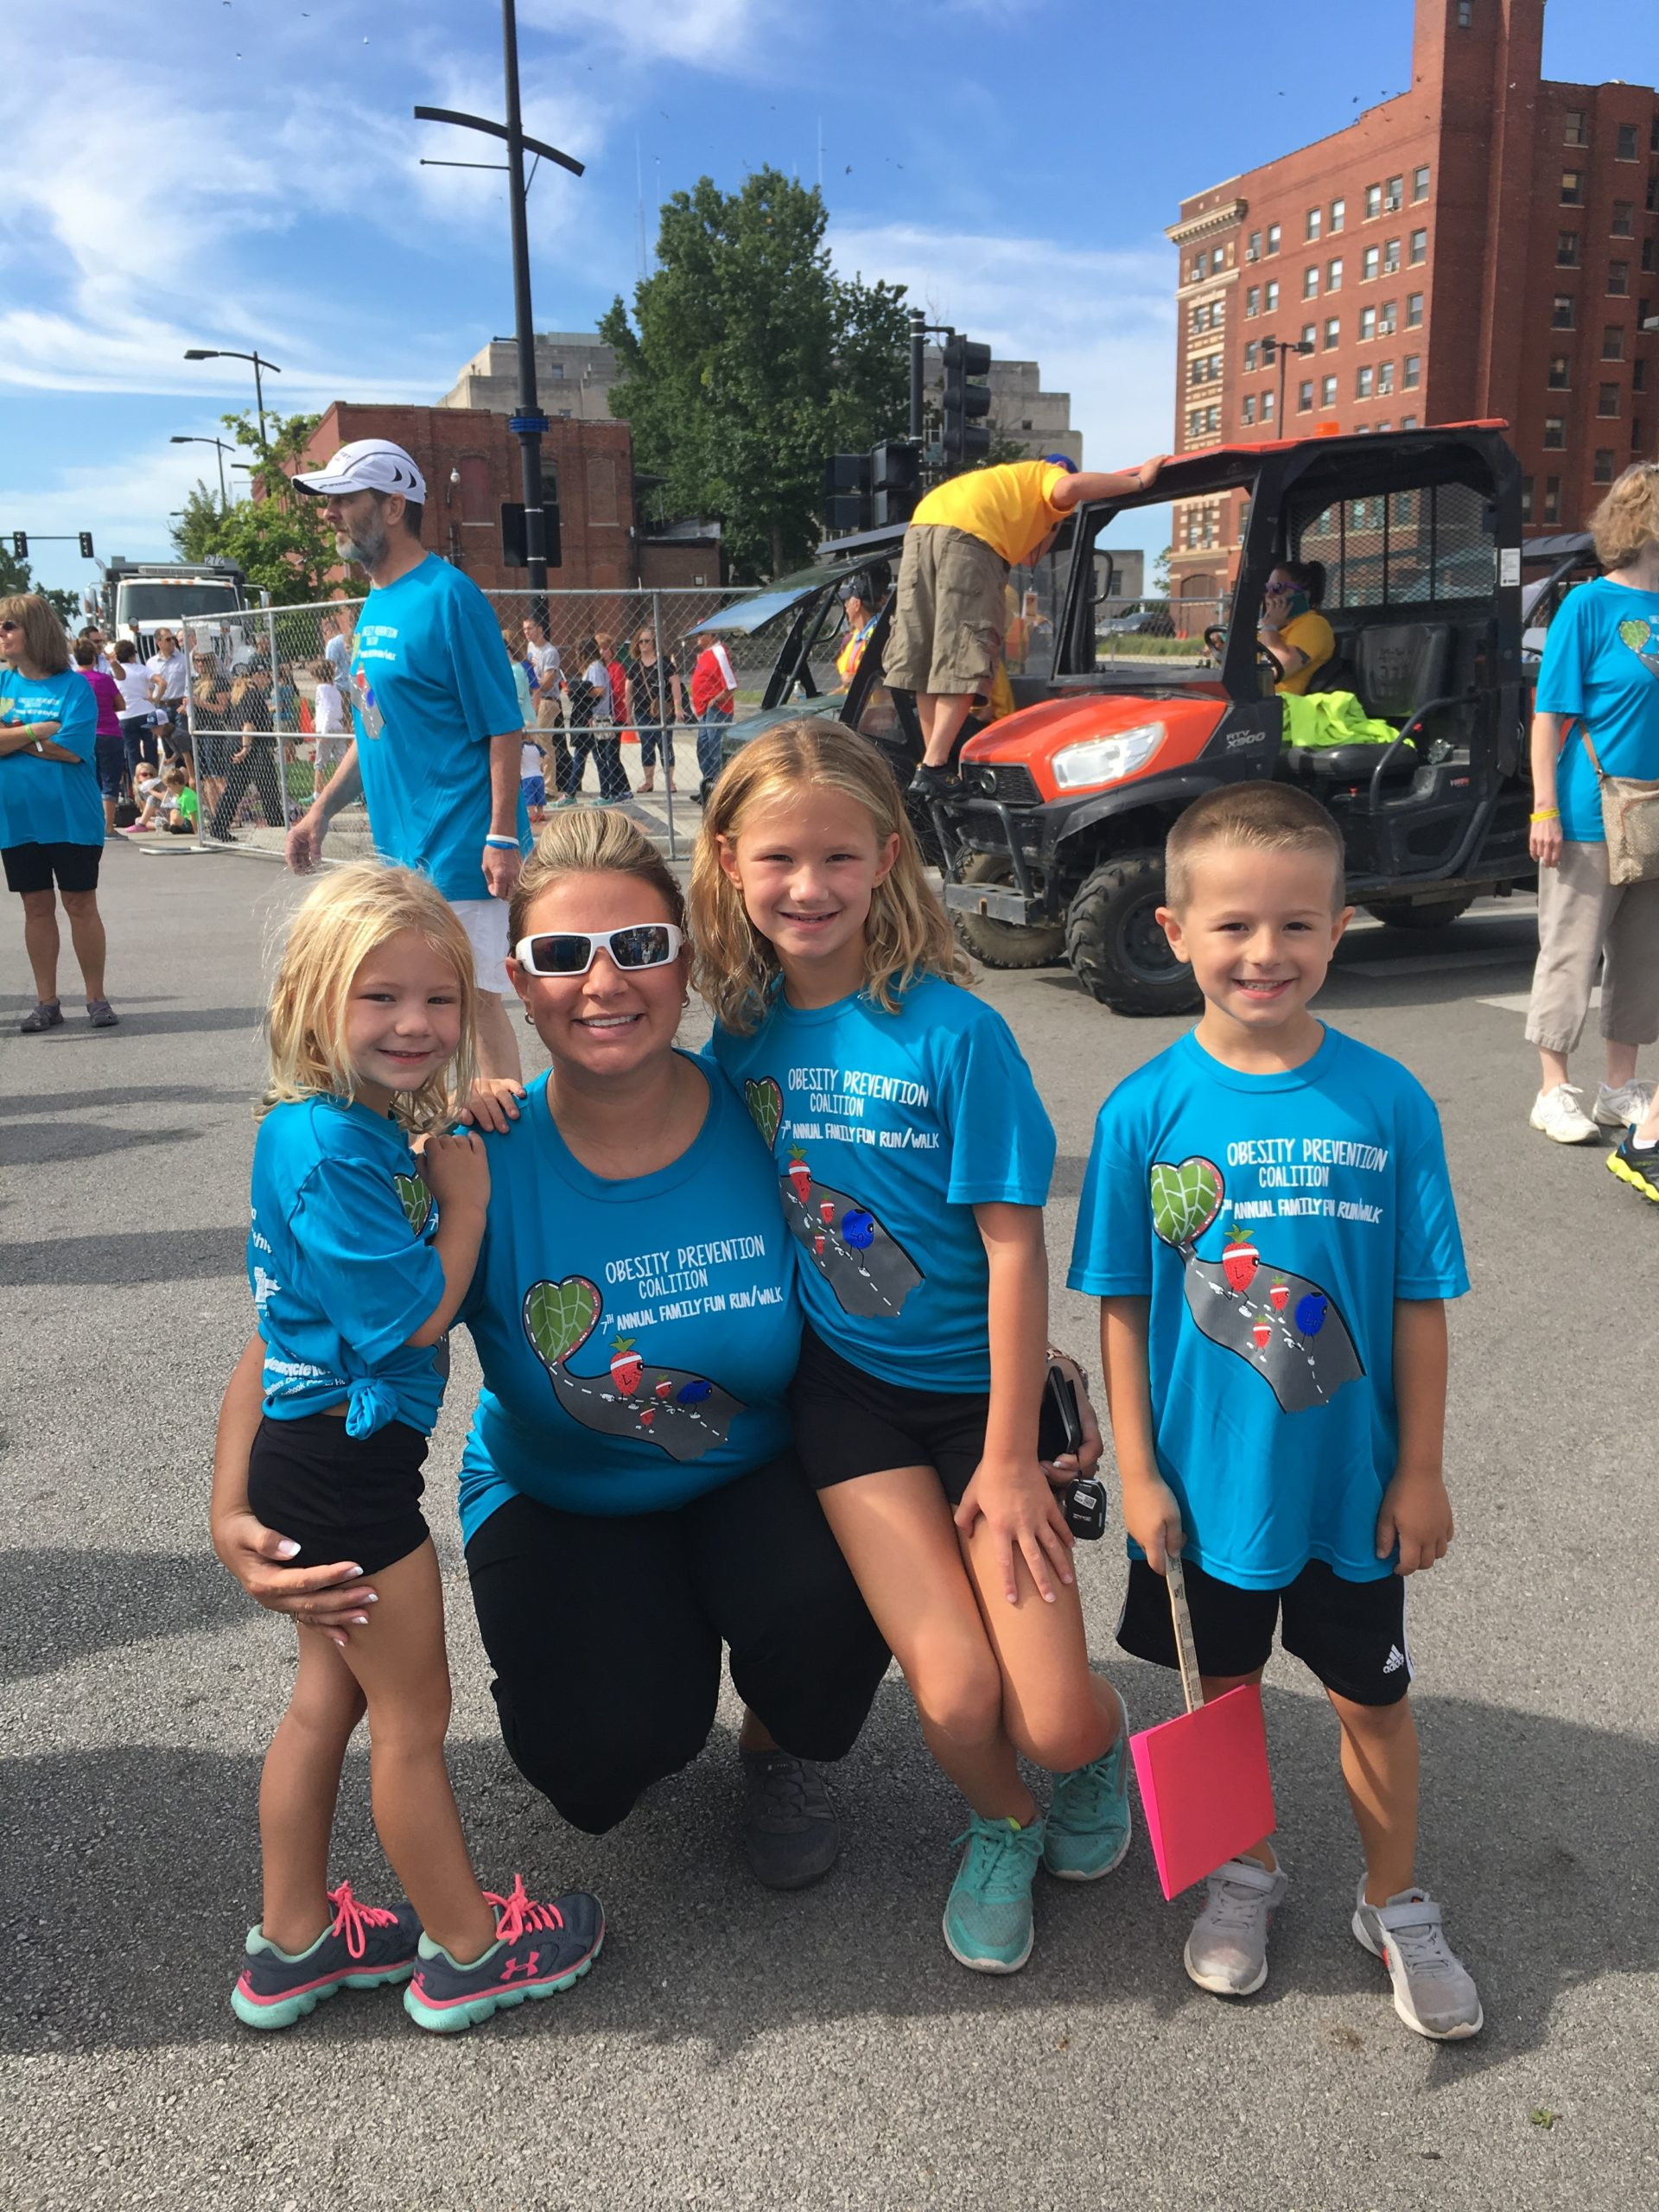 Obesity Prevention Coalition Fun Run Draws Attention to Health of Macon County